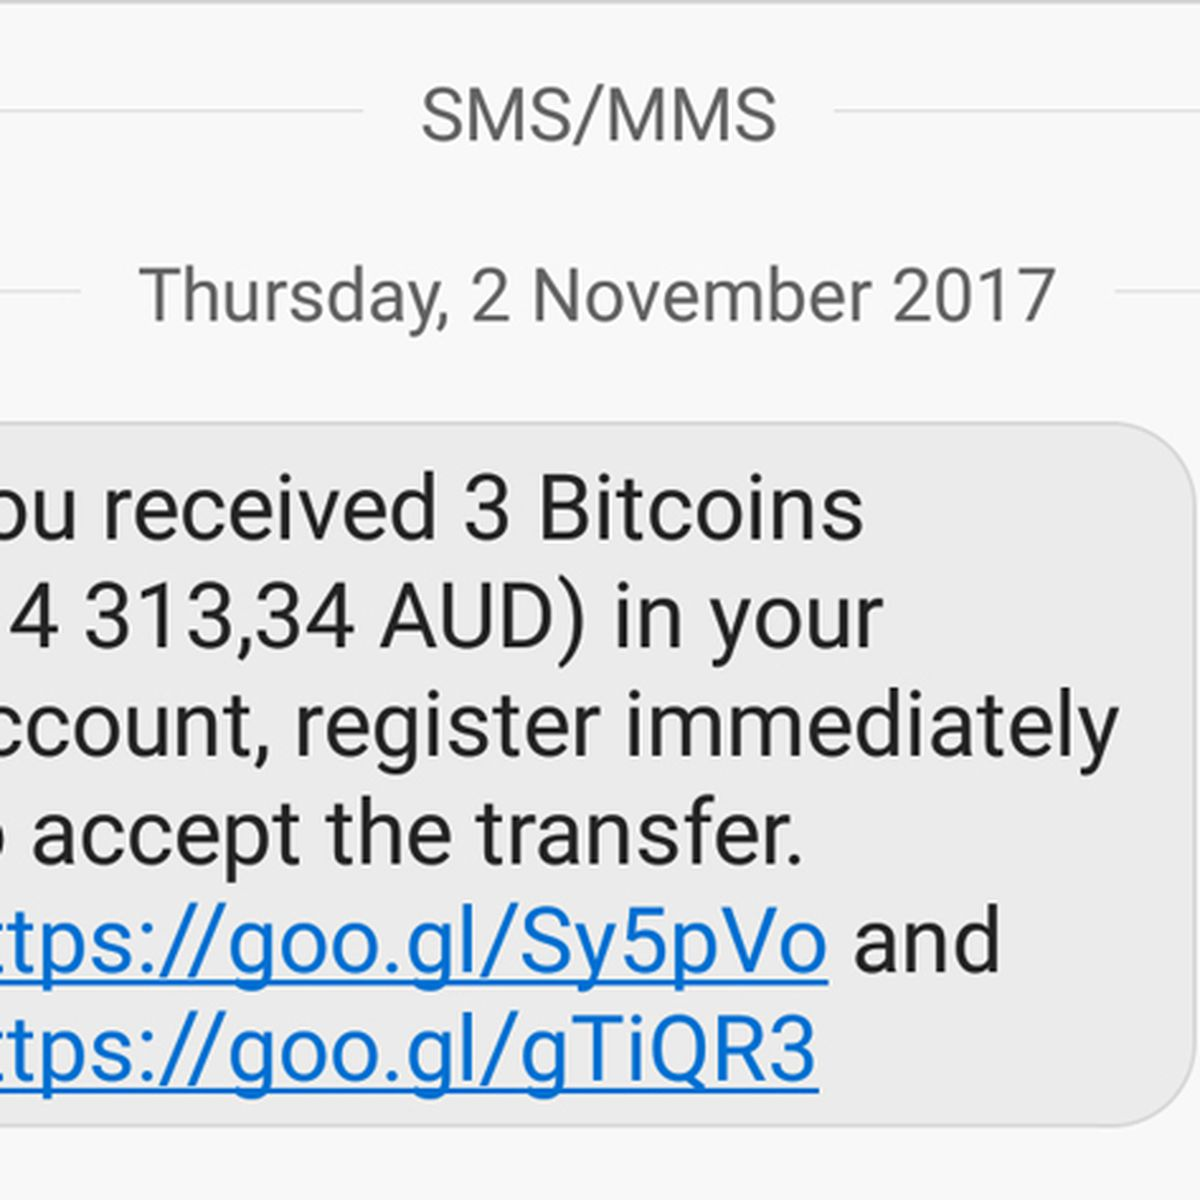 bitcoins buy sms service